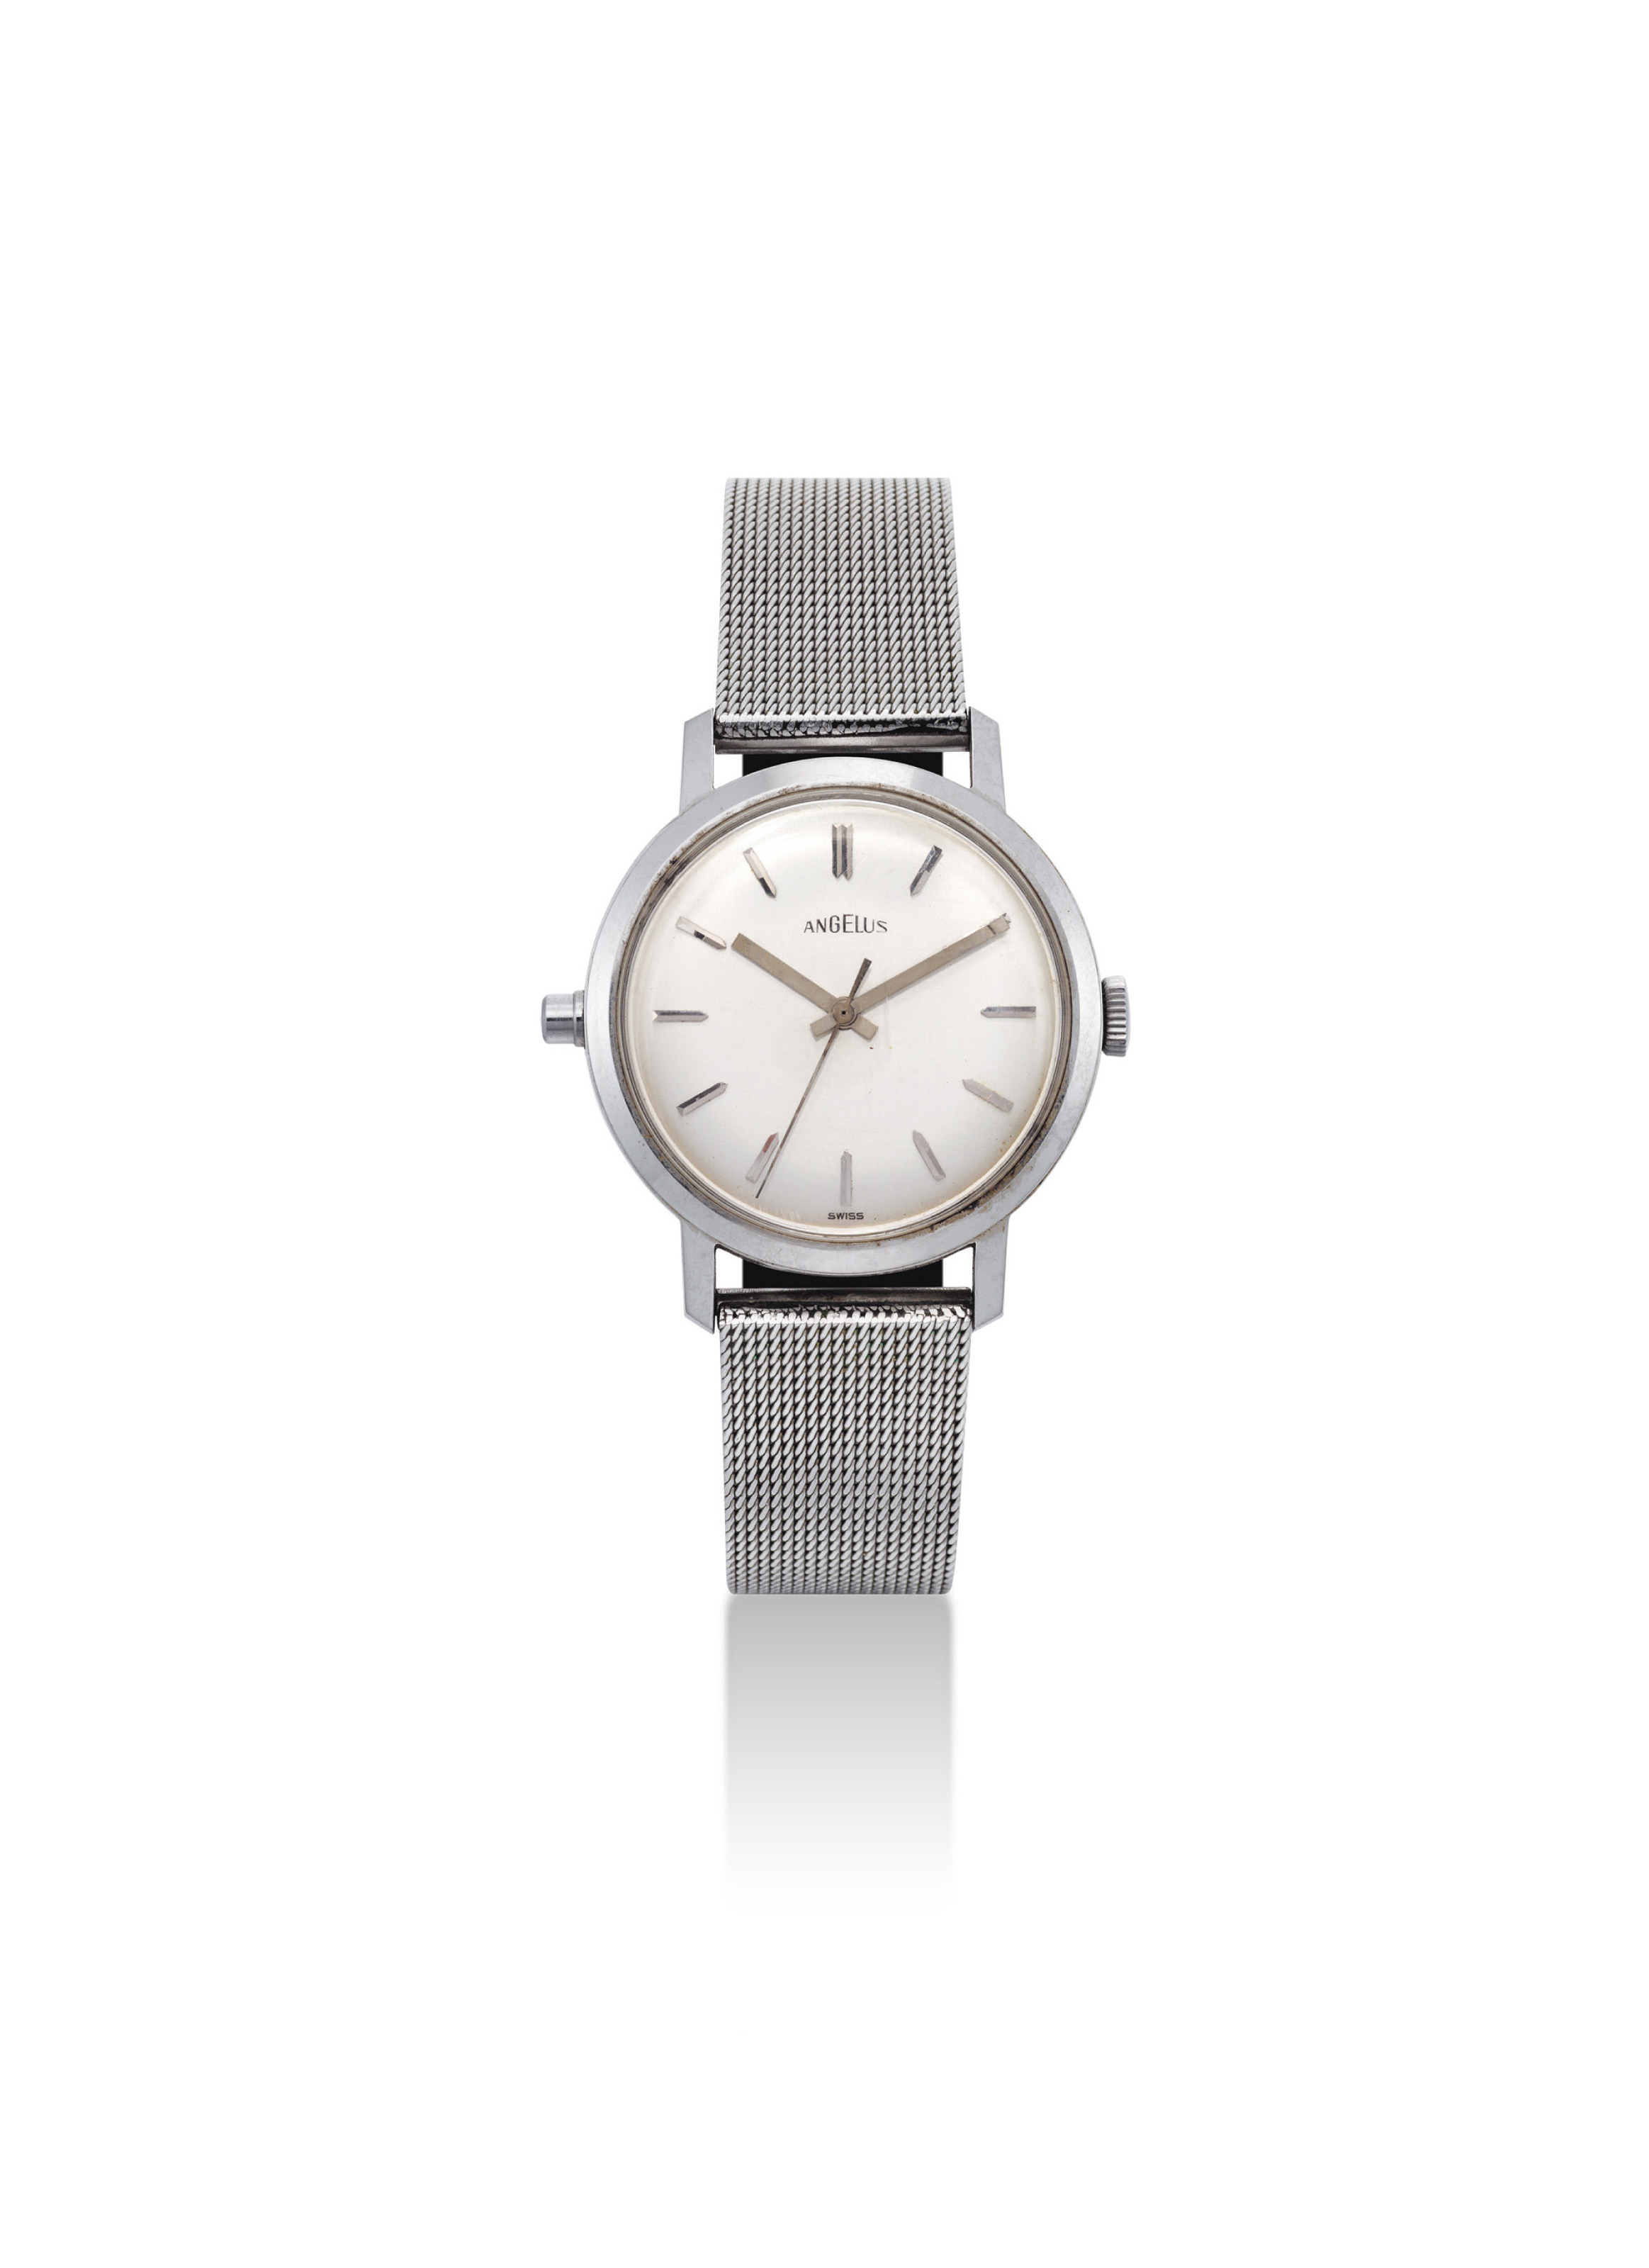 ANGELUS. A STAINLESS STEEL AUTOMATIC QUARTER REPEATING WRISTWATCH WITH SWEEP CENTRE SECONDS